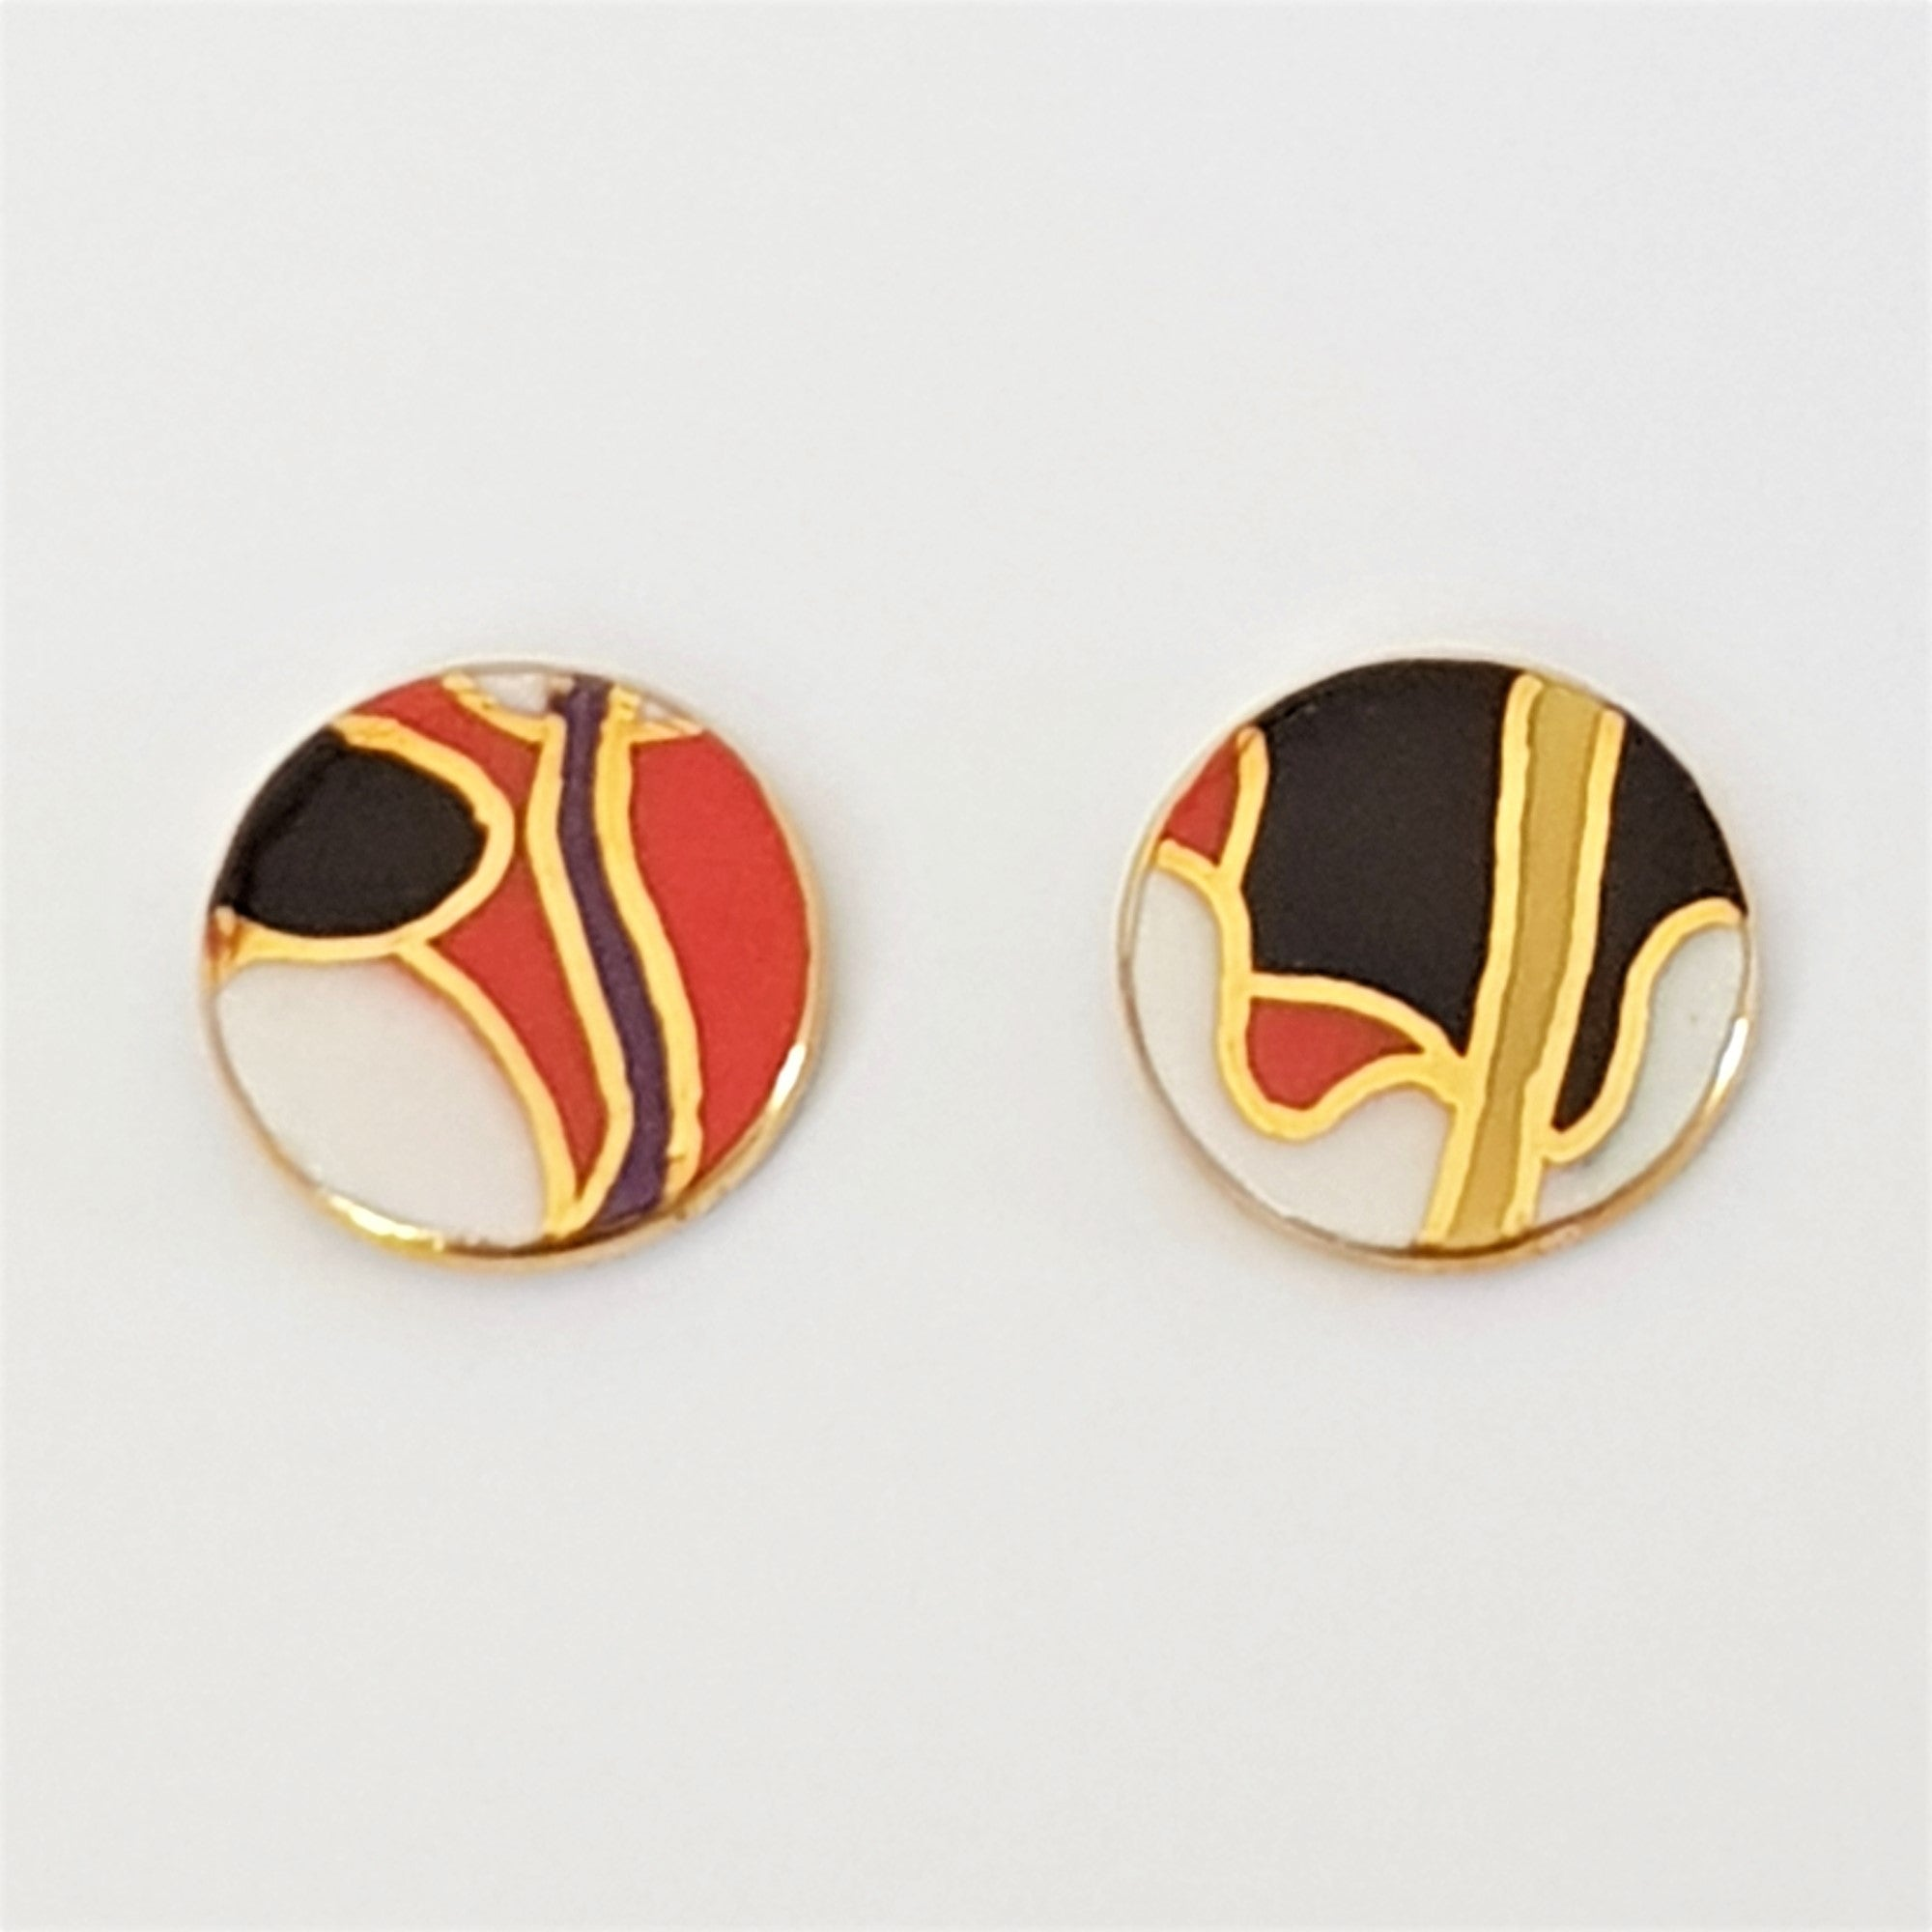 black, white and red porcelain stud earrings with 22kt gold